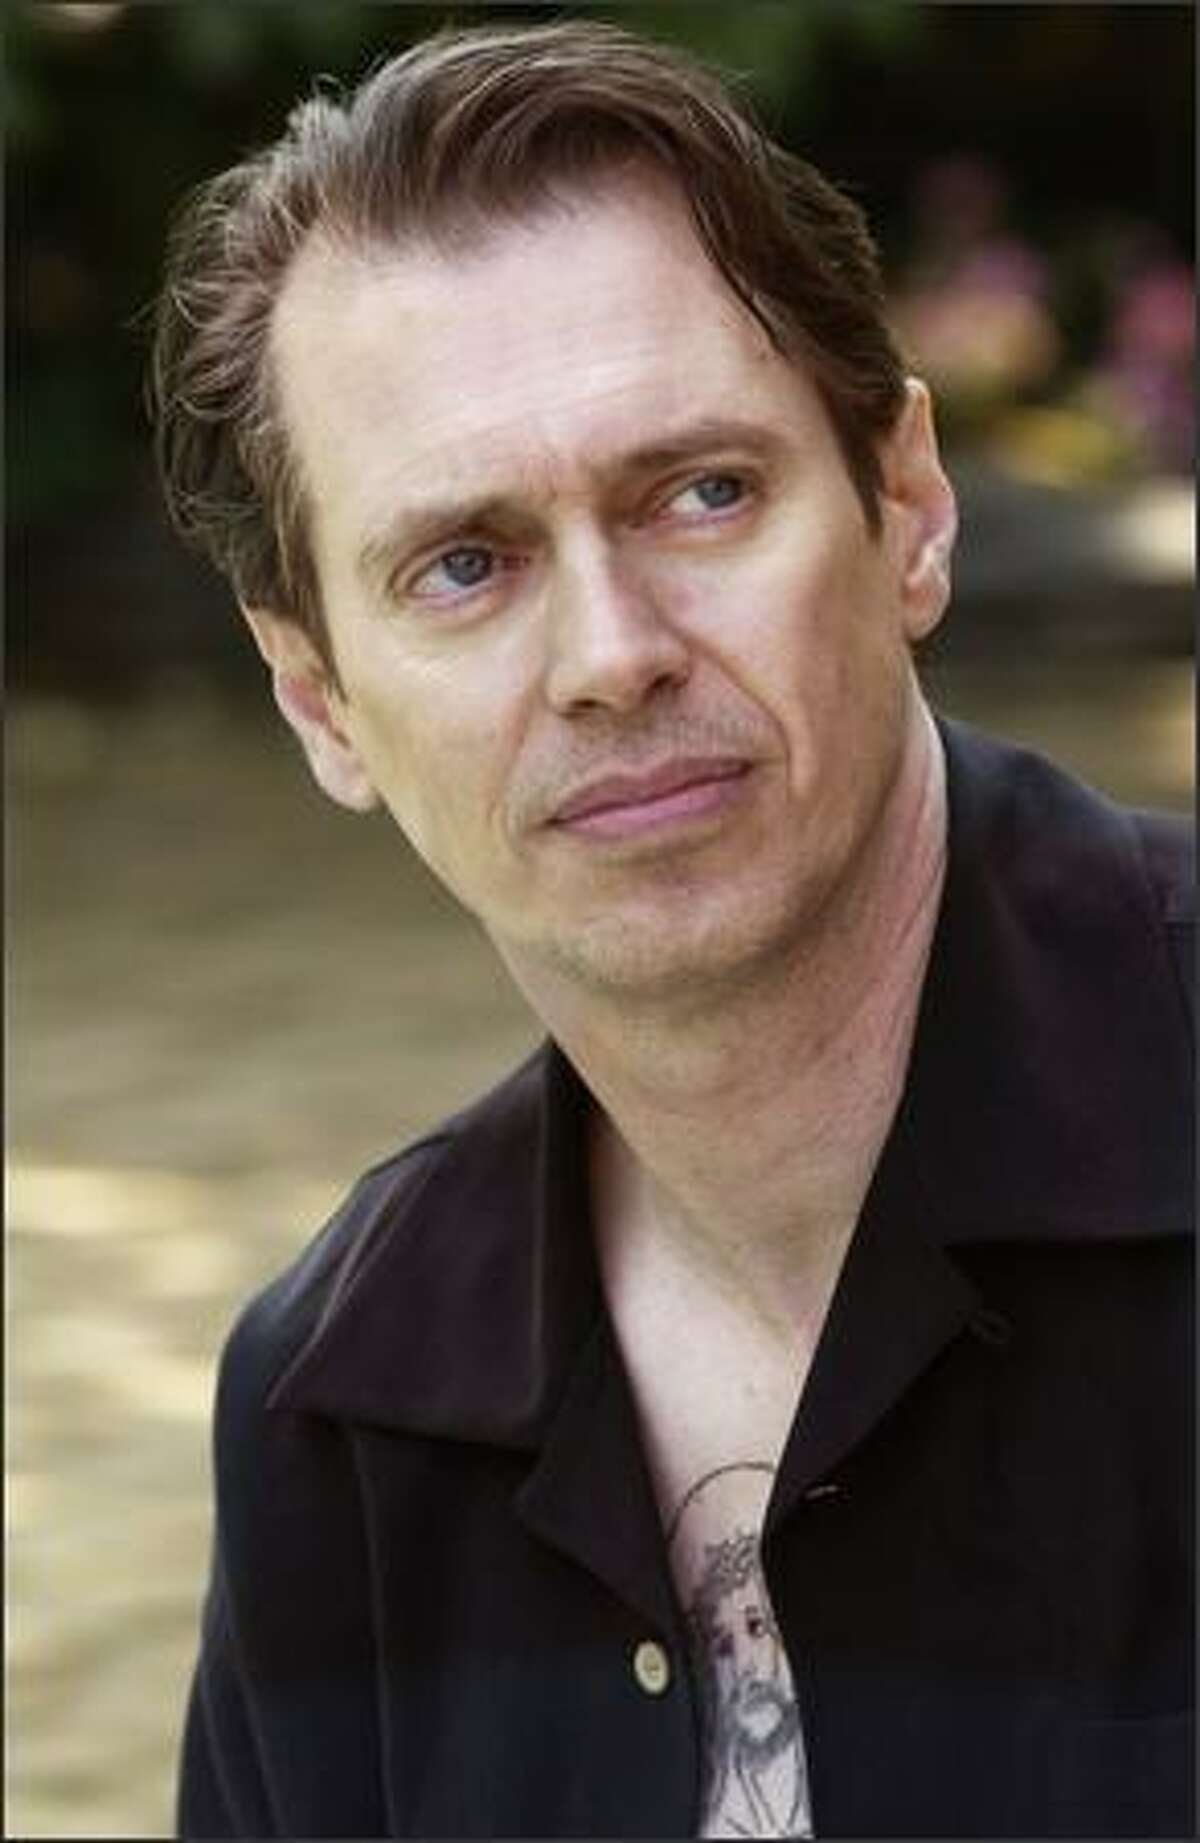 Tony's cousin, Tony Blundetto (Steve Buscemi) is new to the cast this season.